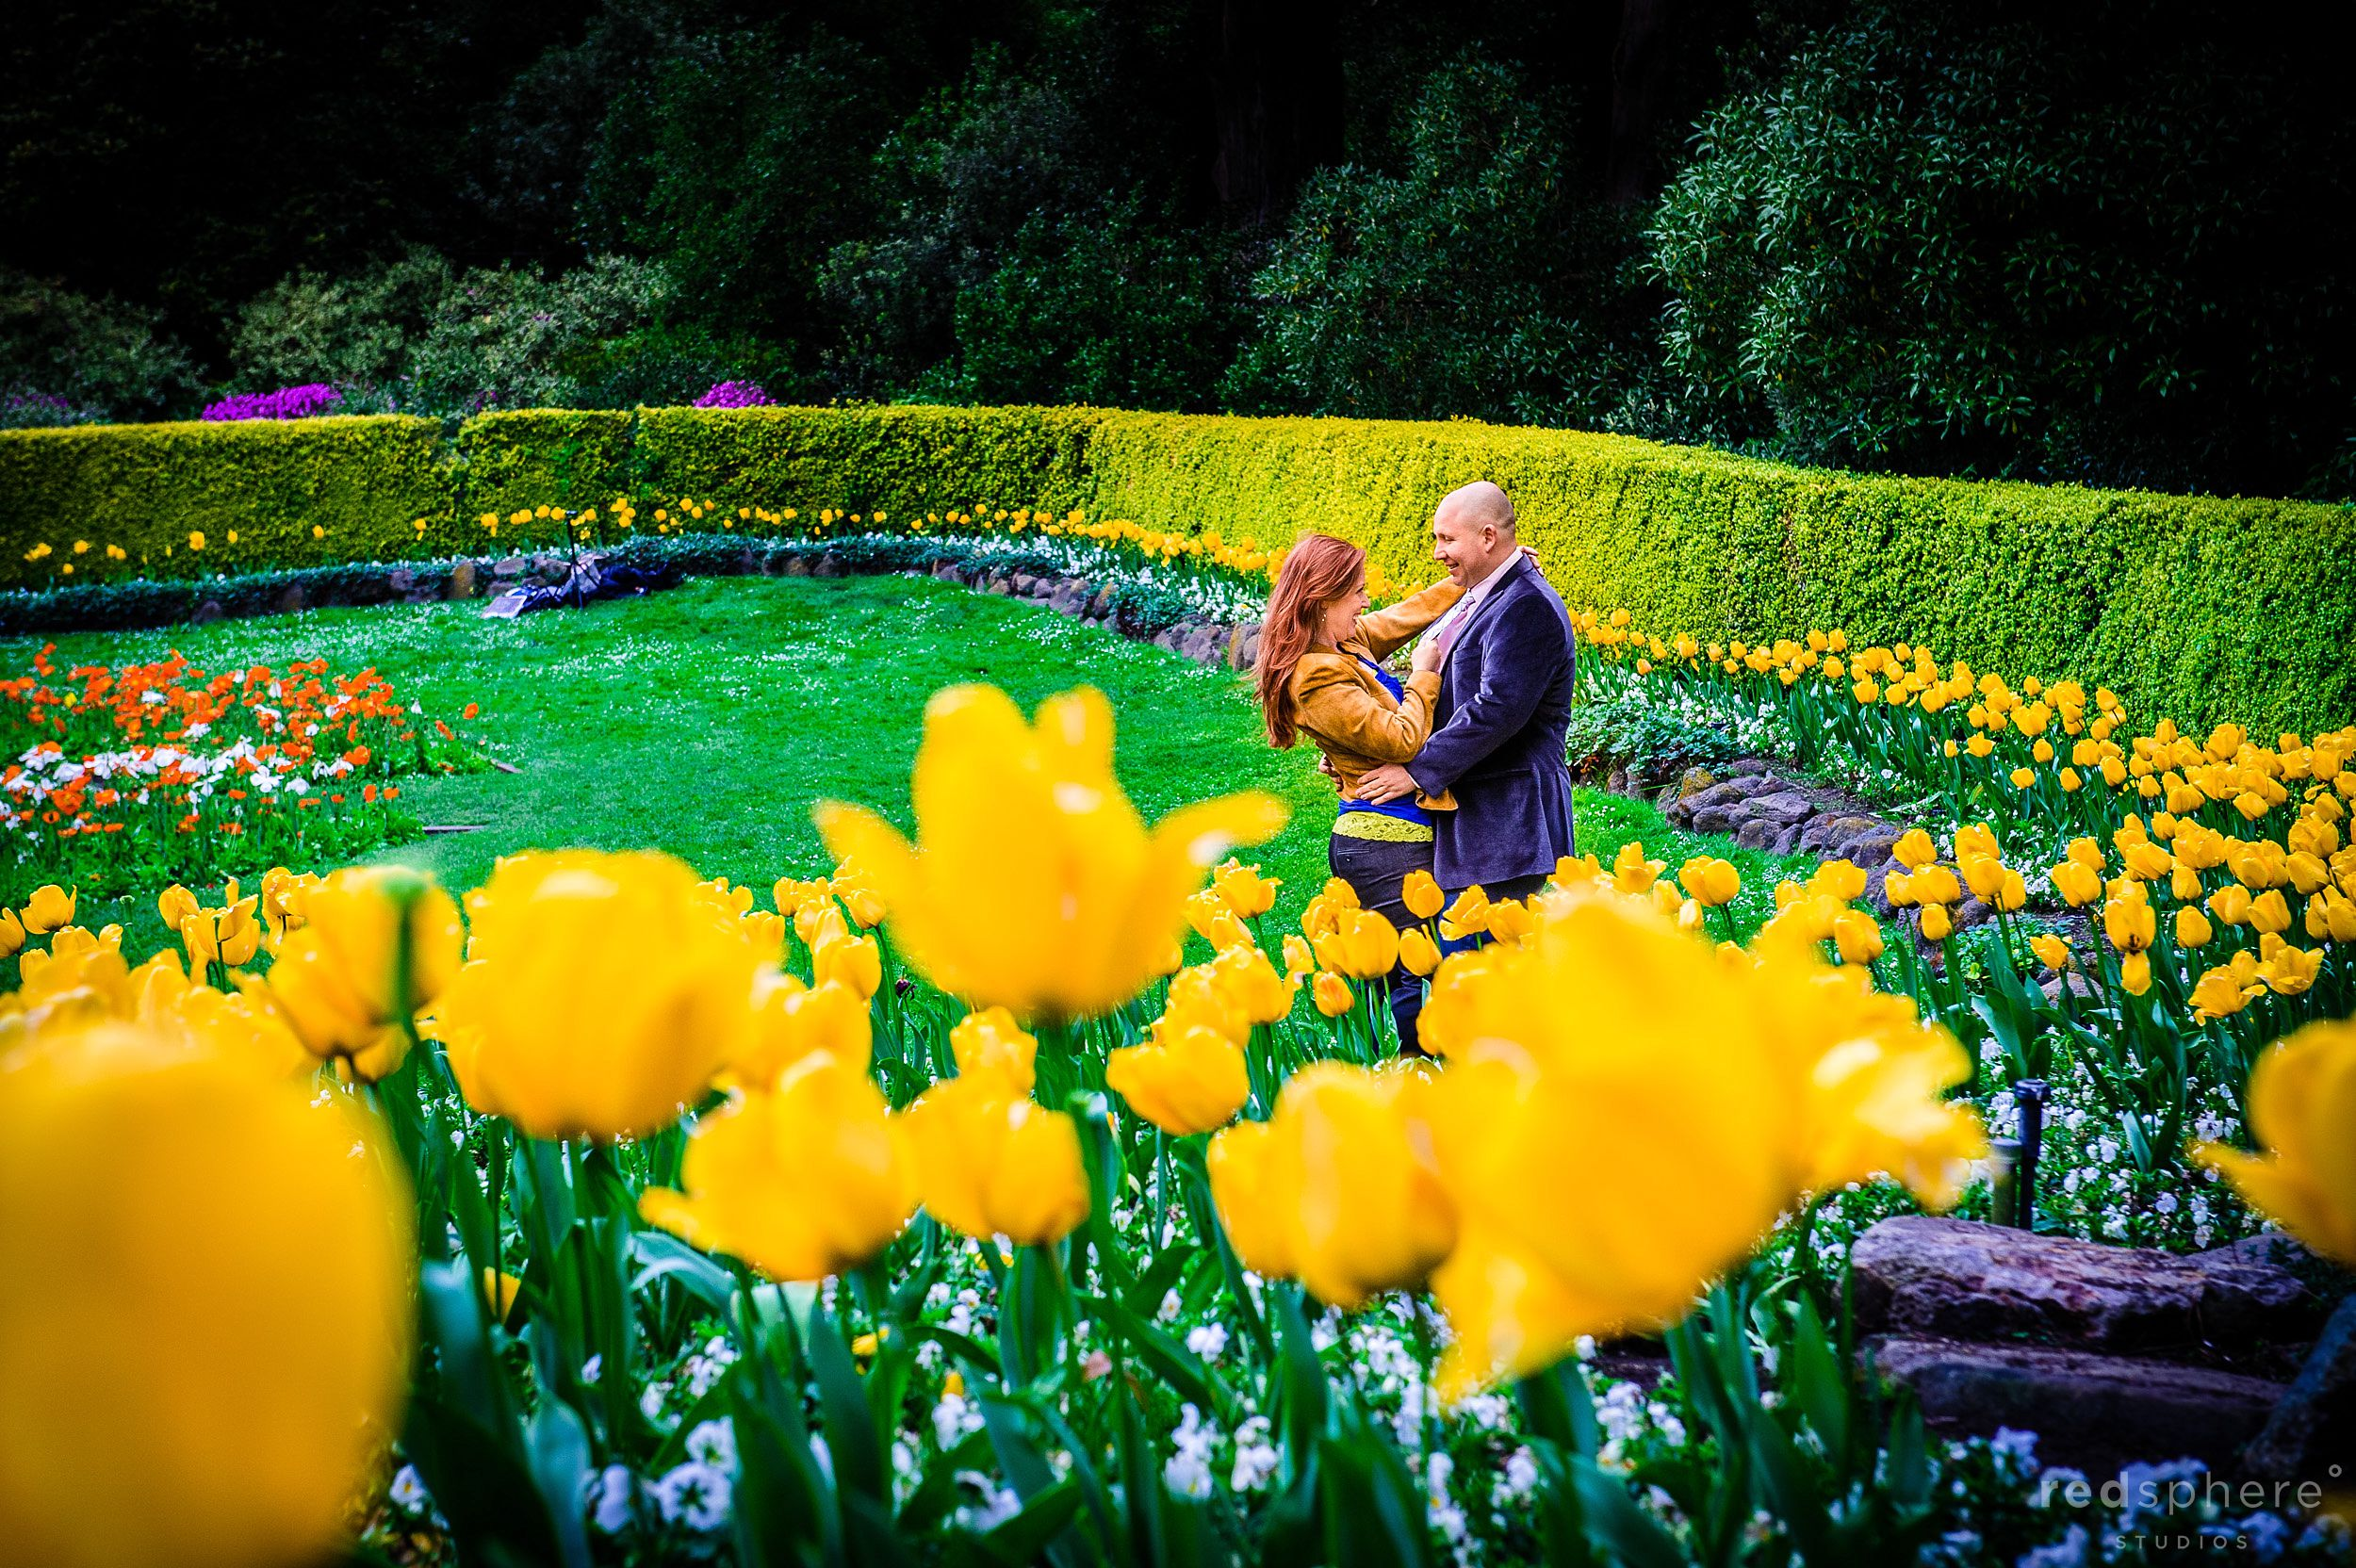 Couple Stare Intently Into One Another's Eyes in Golden Gate Park, San Francisco